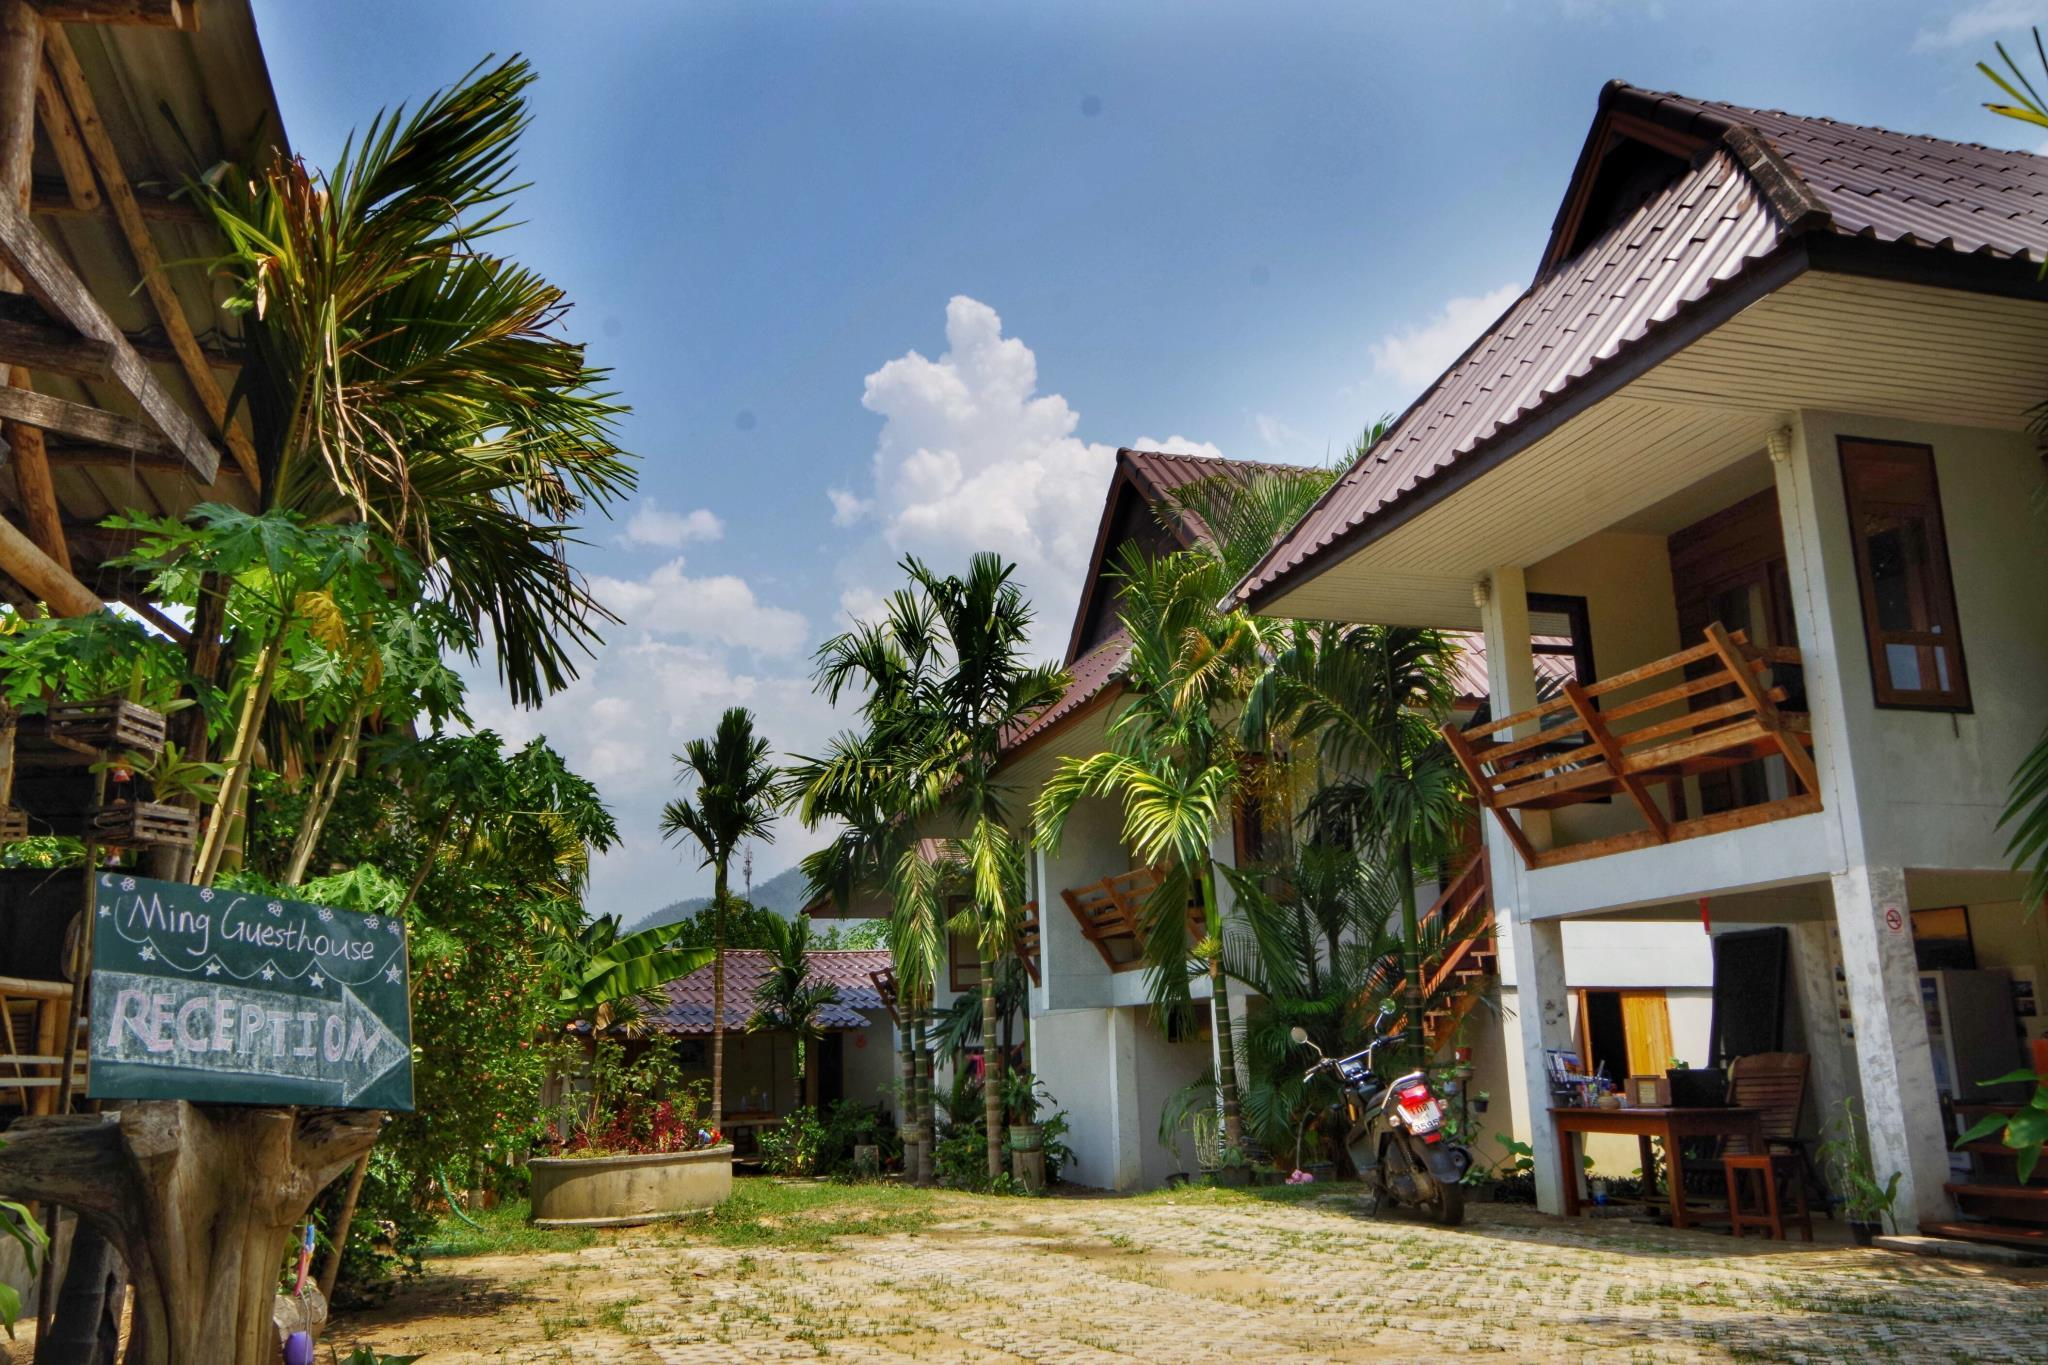 Ming Guesthouse